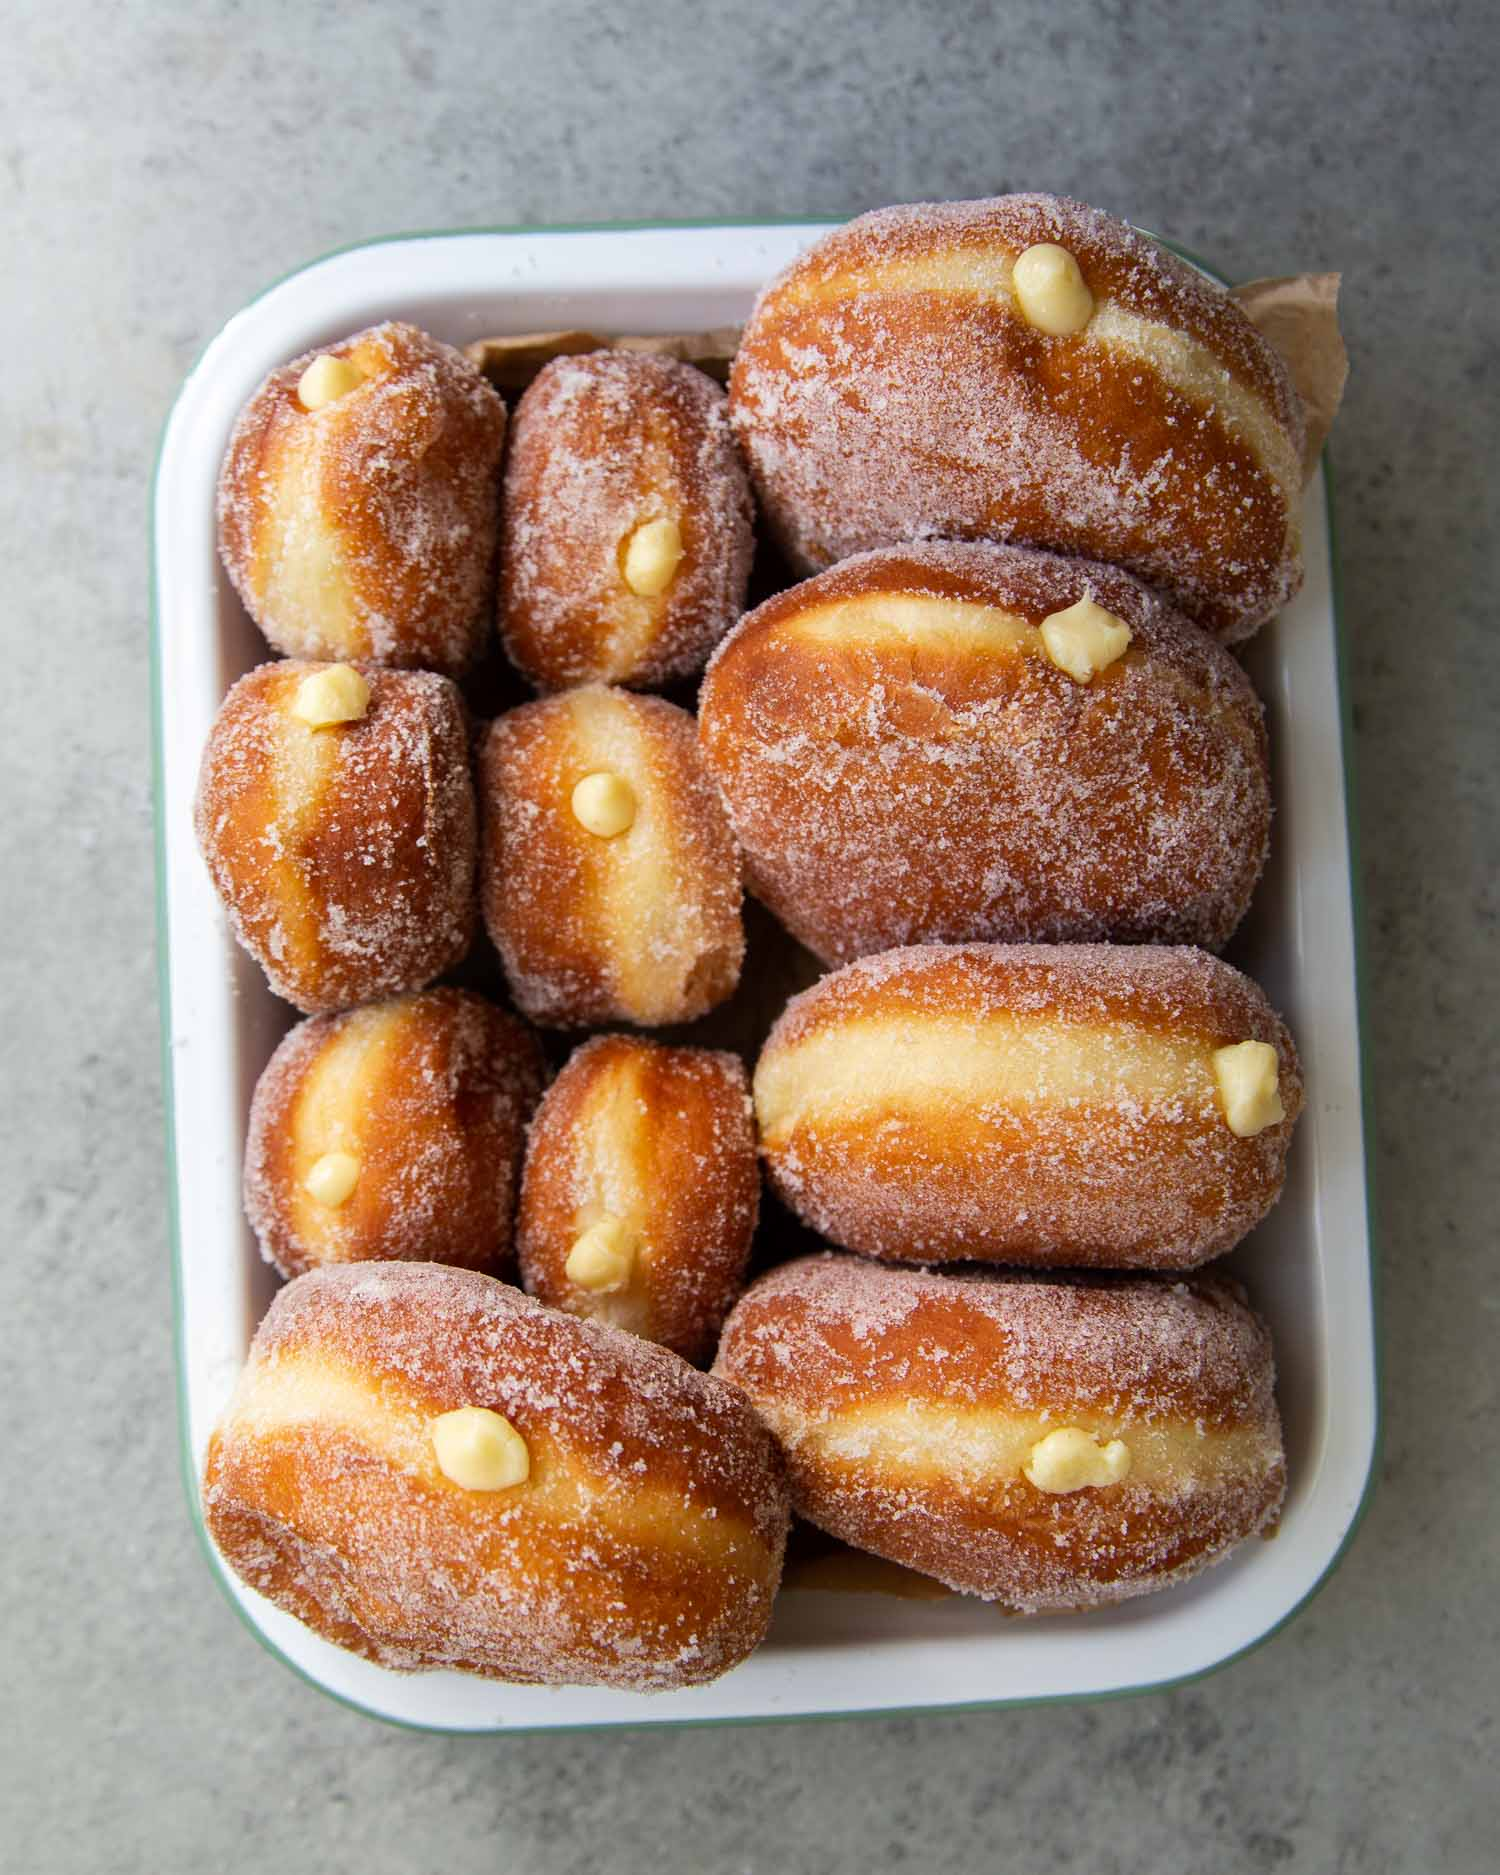 Pastry Cream Filled Donuts.